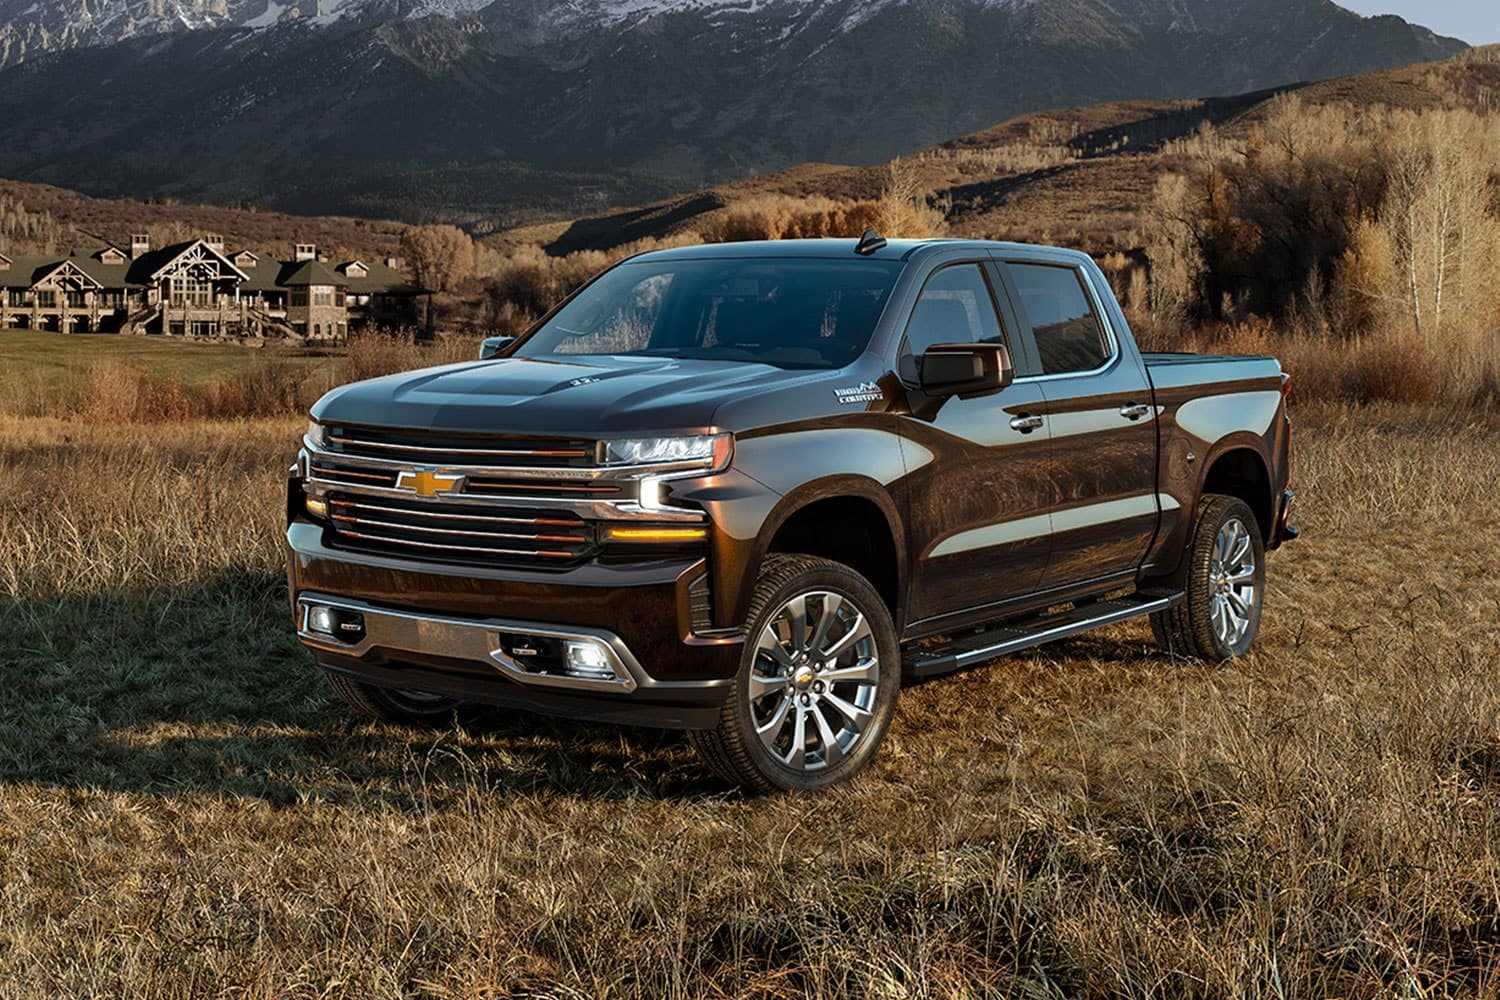 Silverado Trucks For Sale >> Chevy Trucks For Sale In Tulsa Ok Keystone Chevrolet